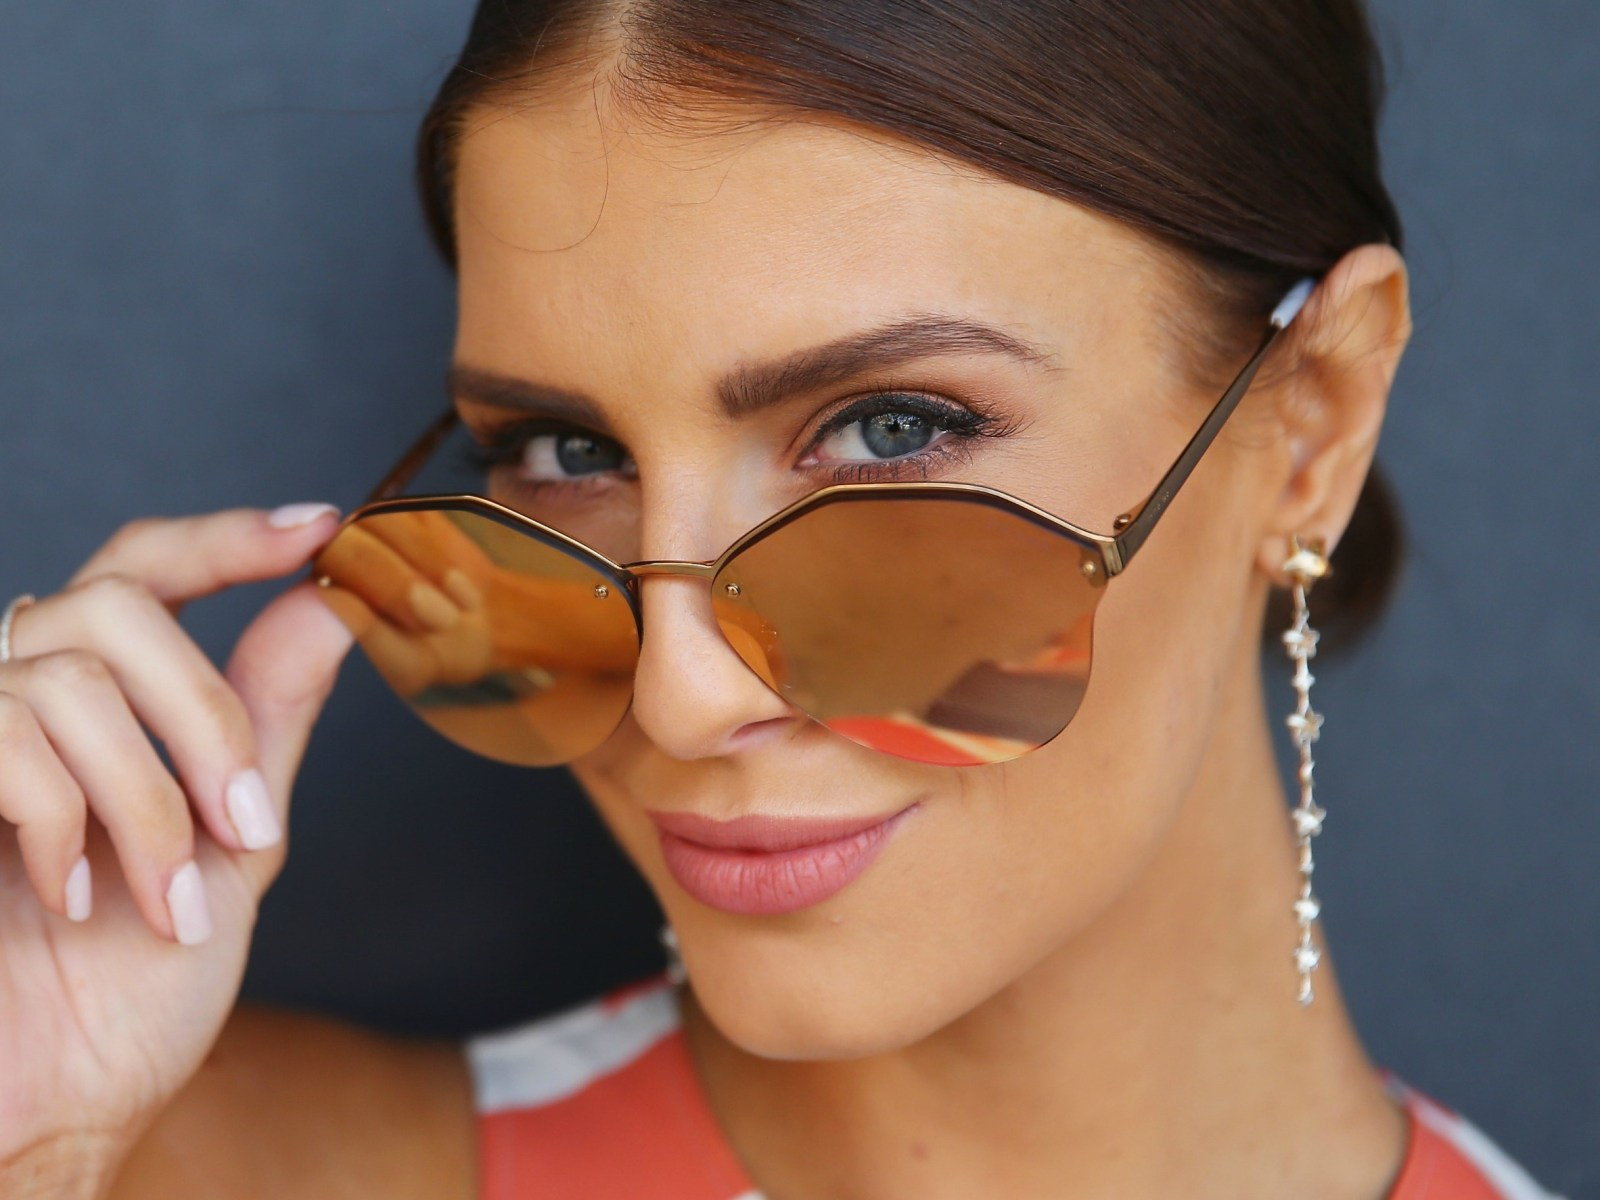 Sweating off your makeup in the summer heat? We're here to help with the best tips for how to manage your makeup and look fabulous all summer!